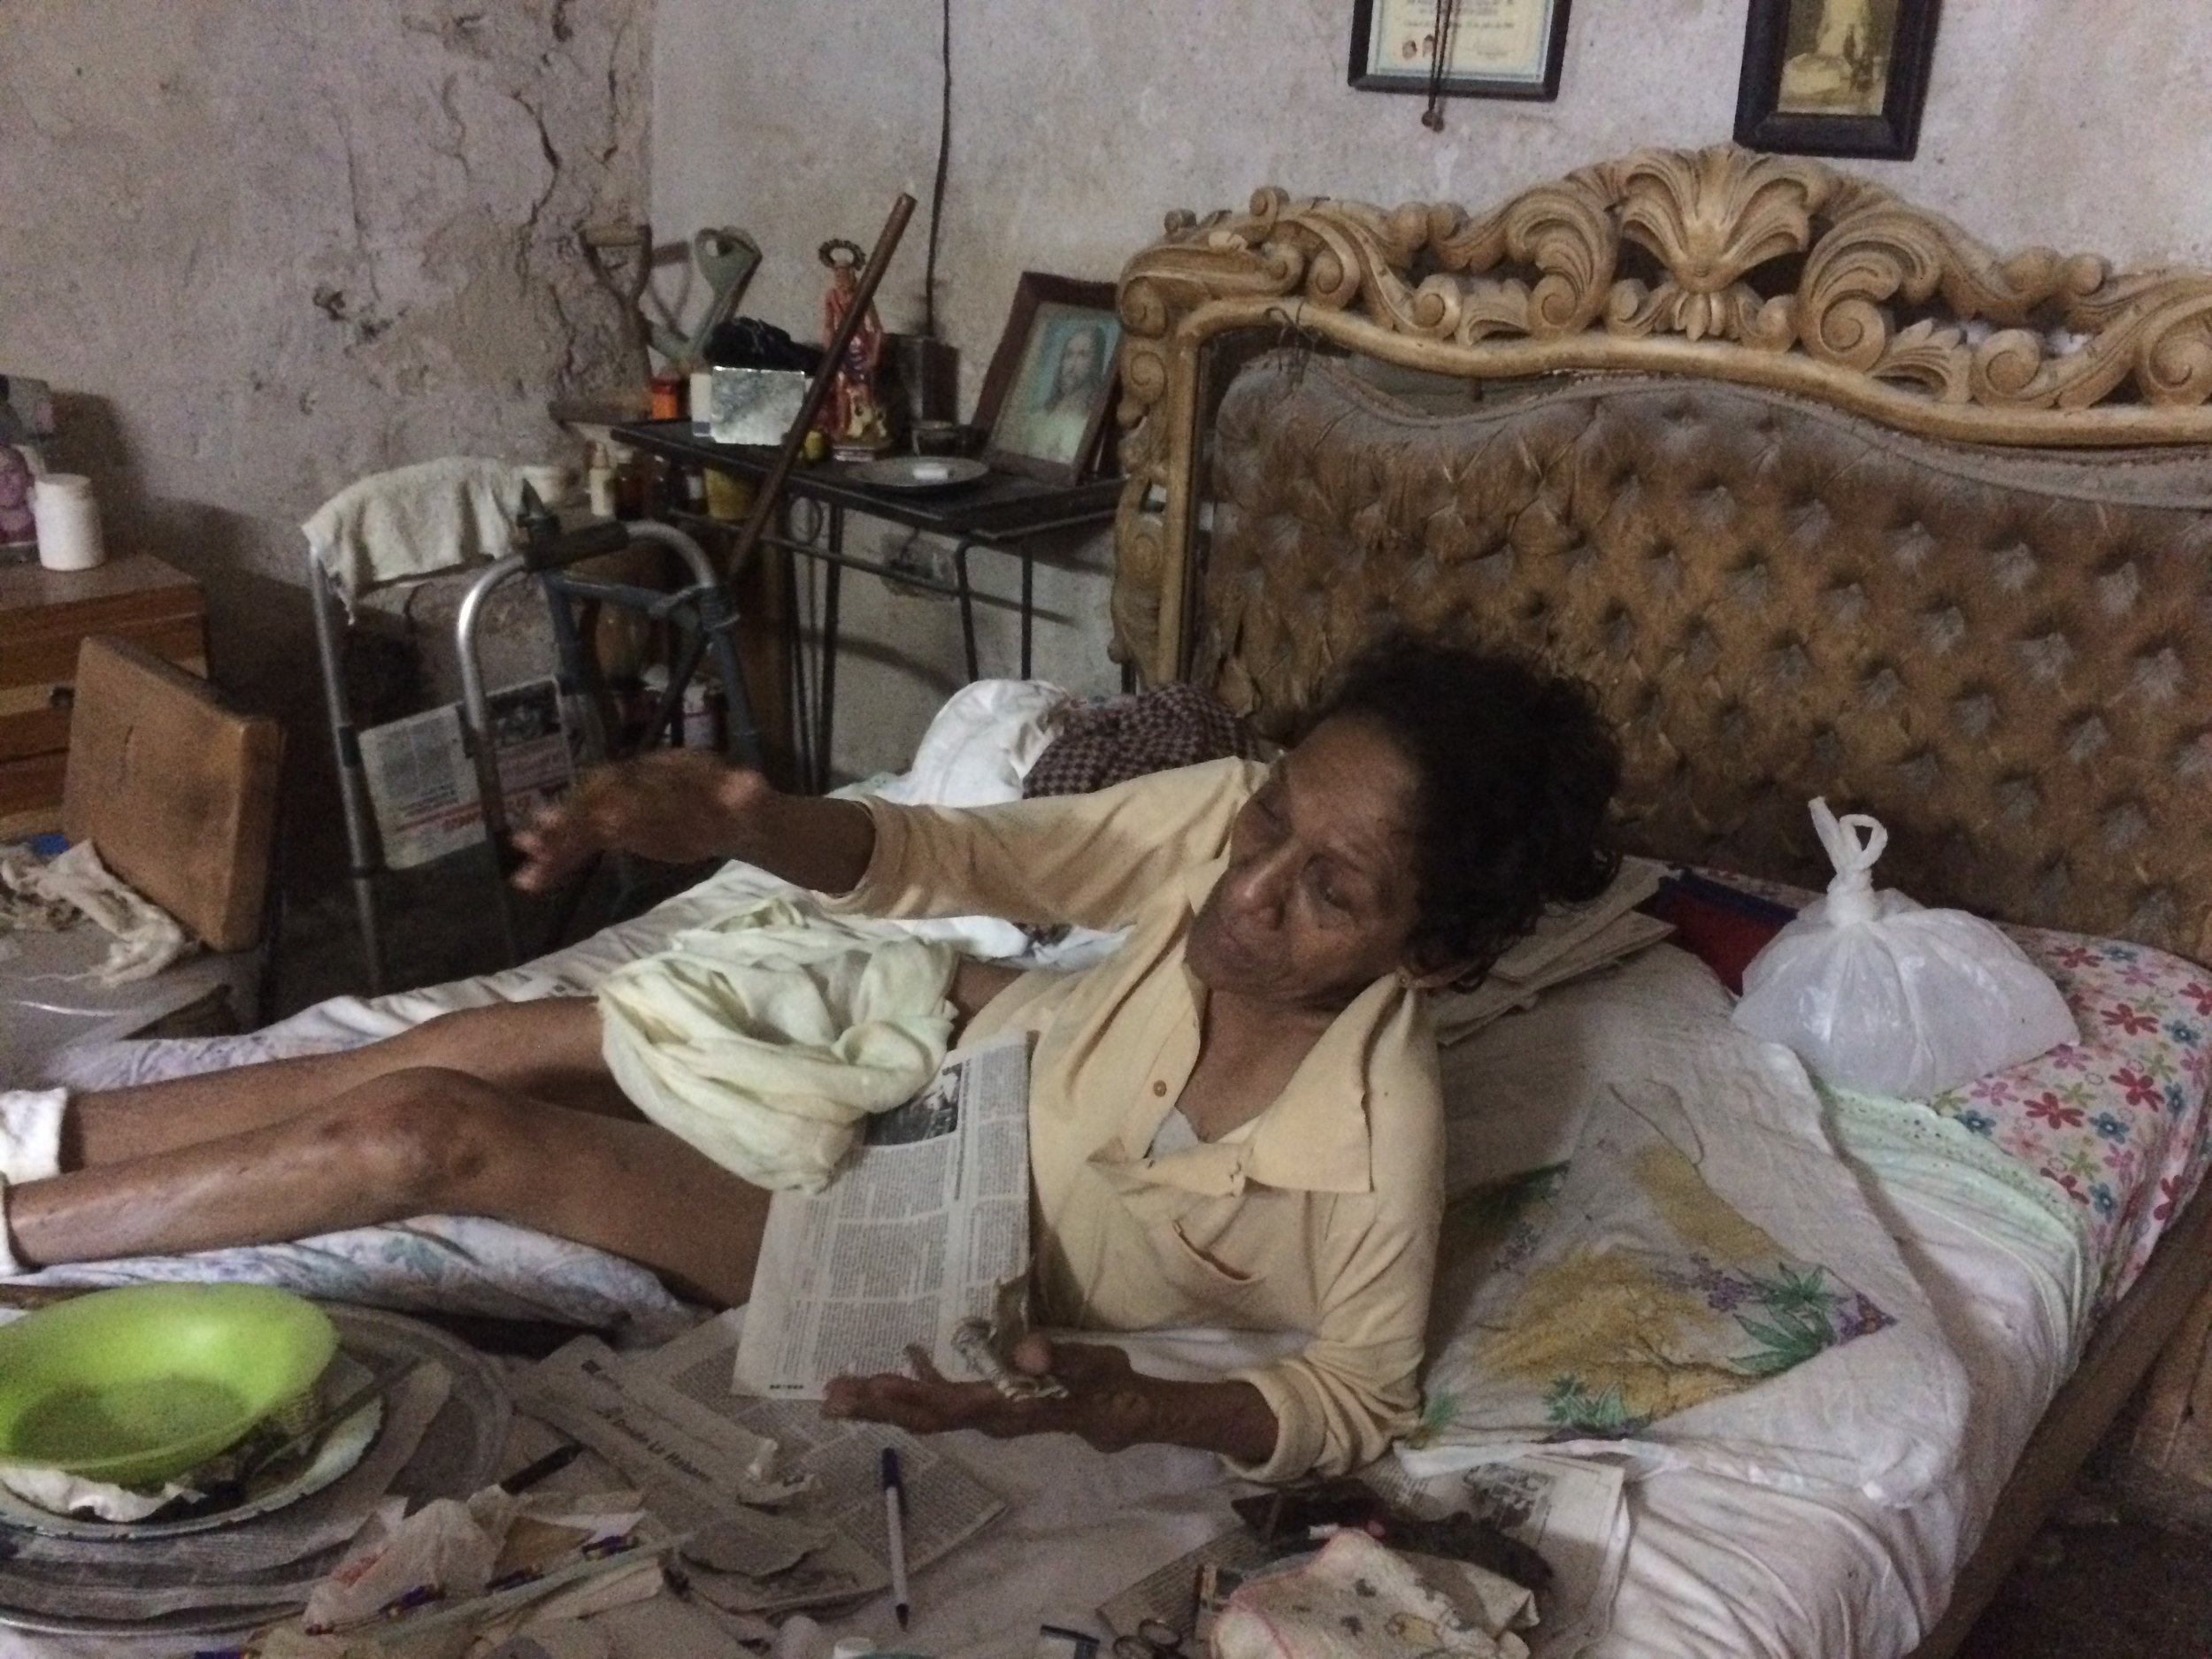 An example of how some elderly live in Cuba.